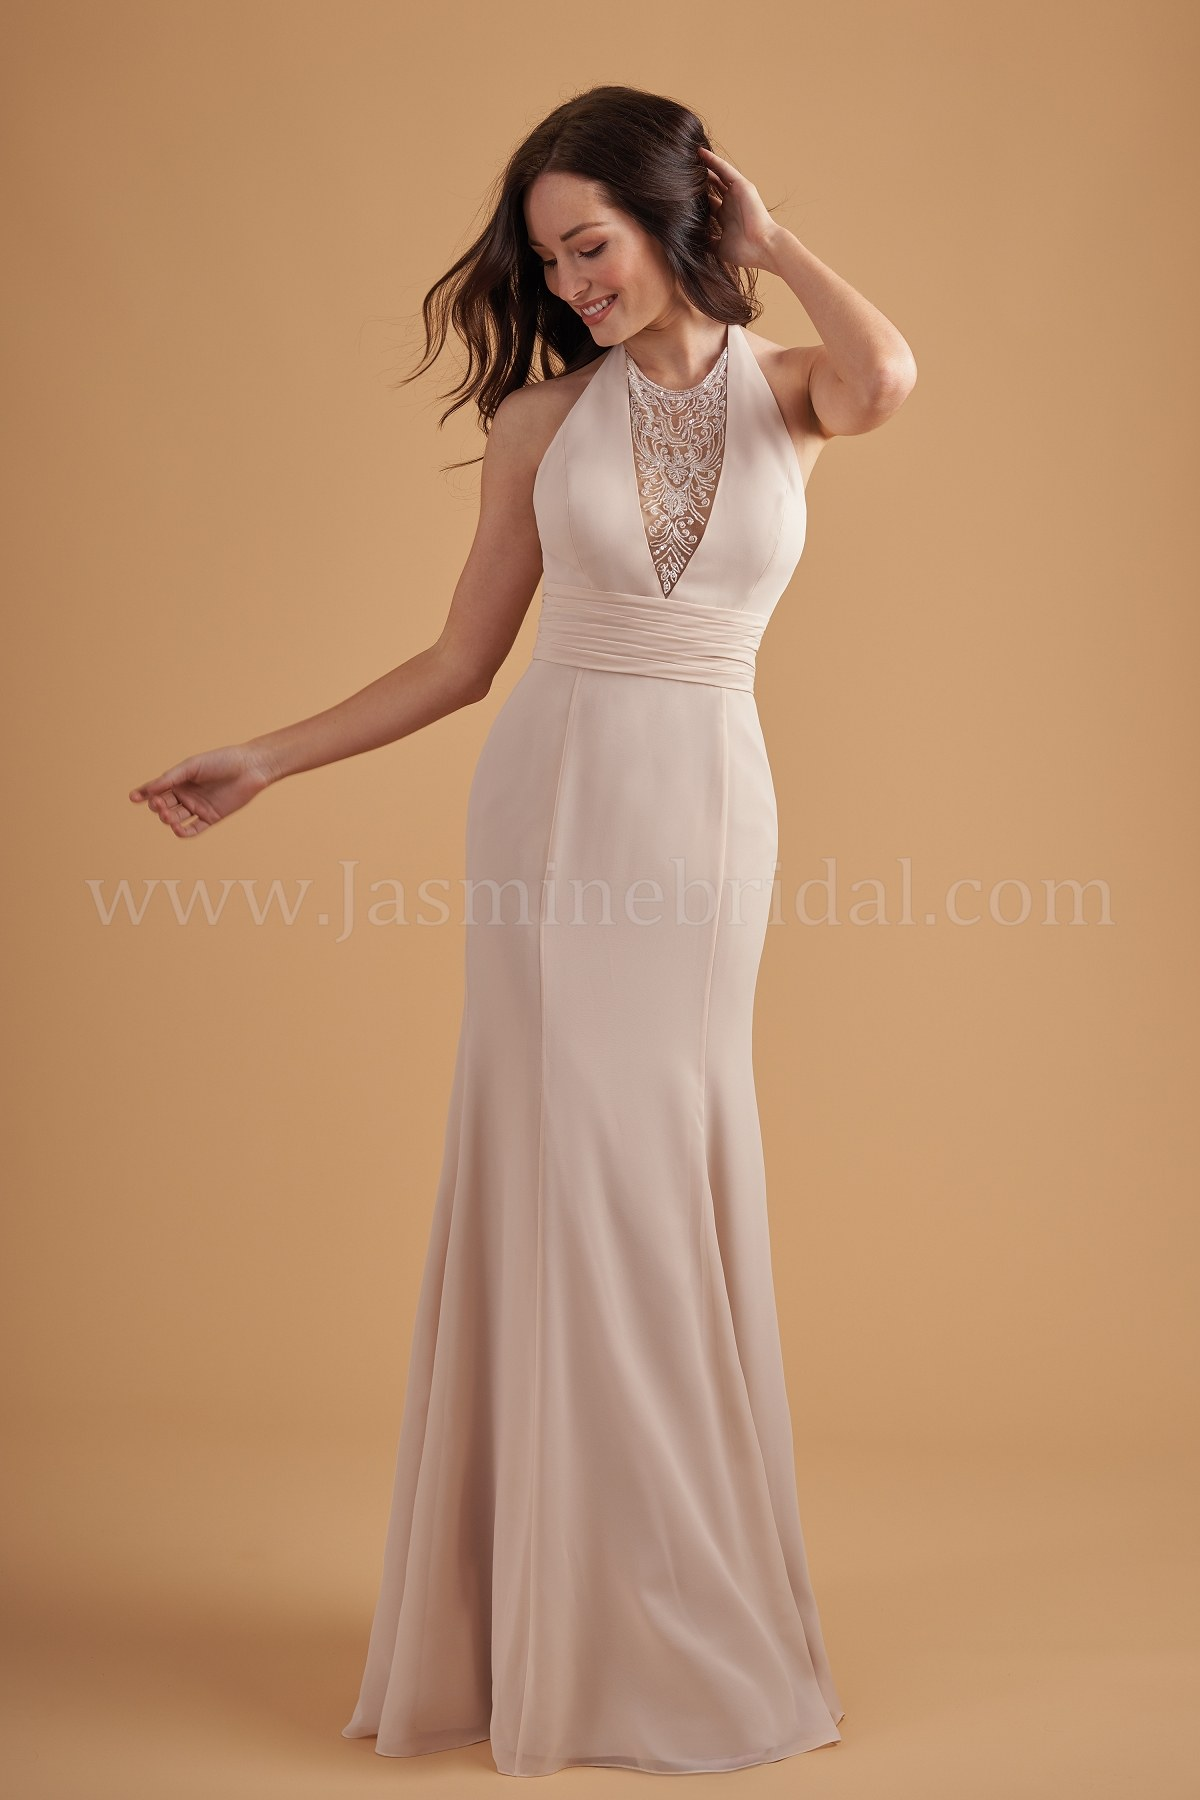 bridesmaid-dresses-Belsoie2